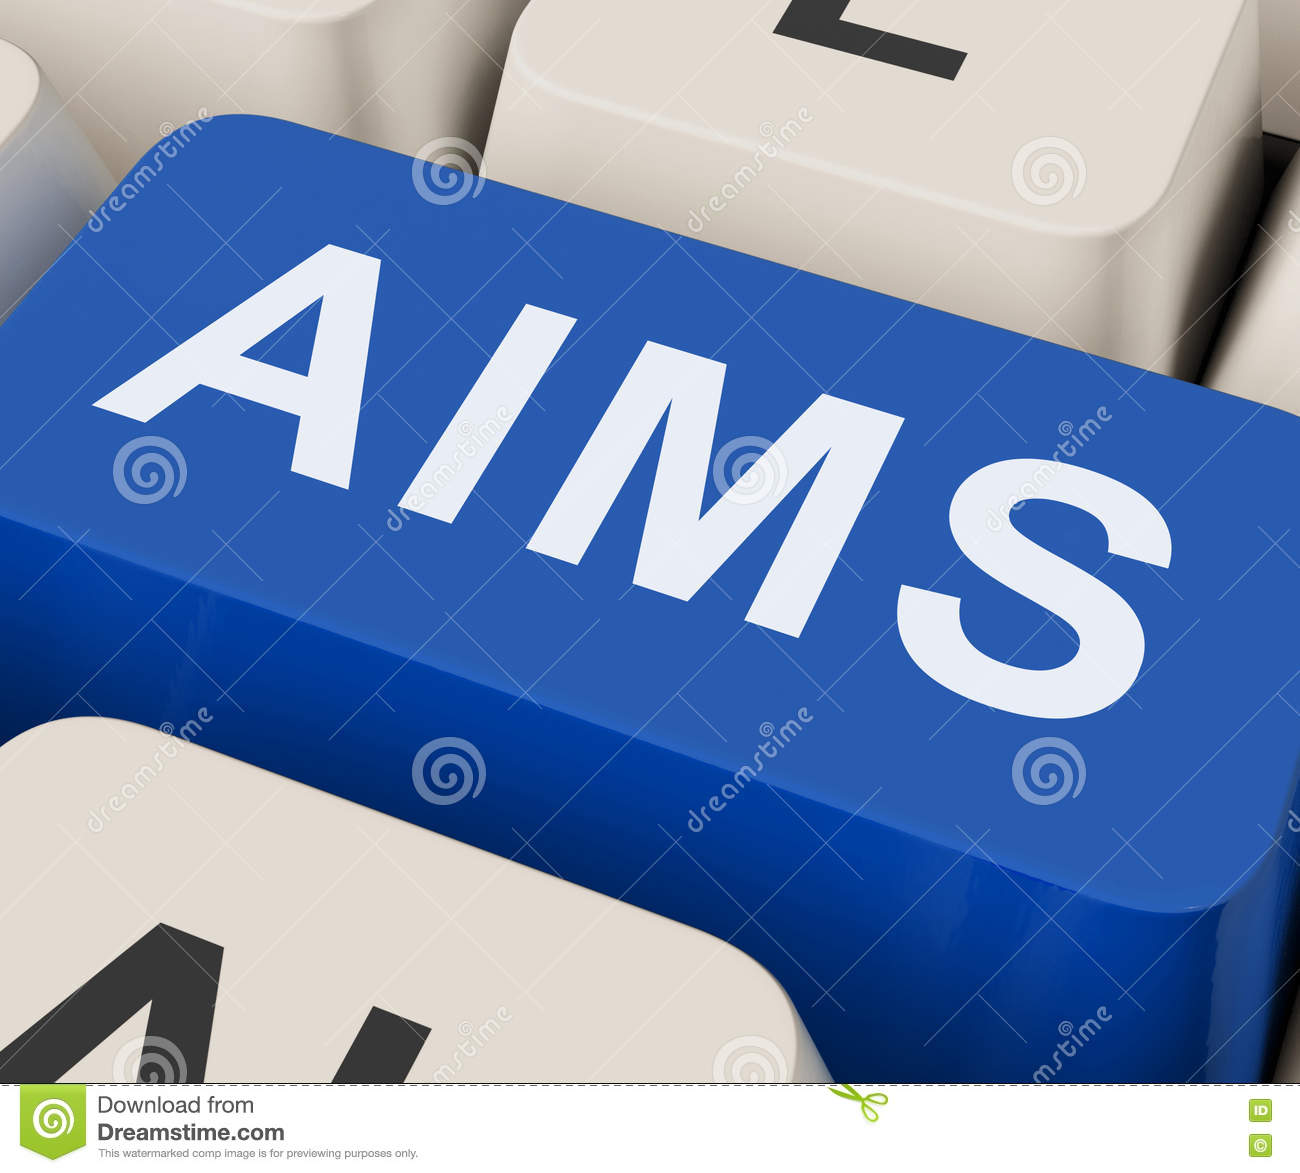 Aims Key Shows Goals Purpose And Aspirations